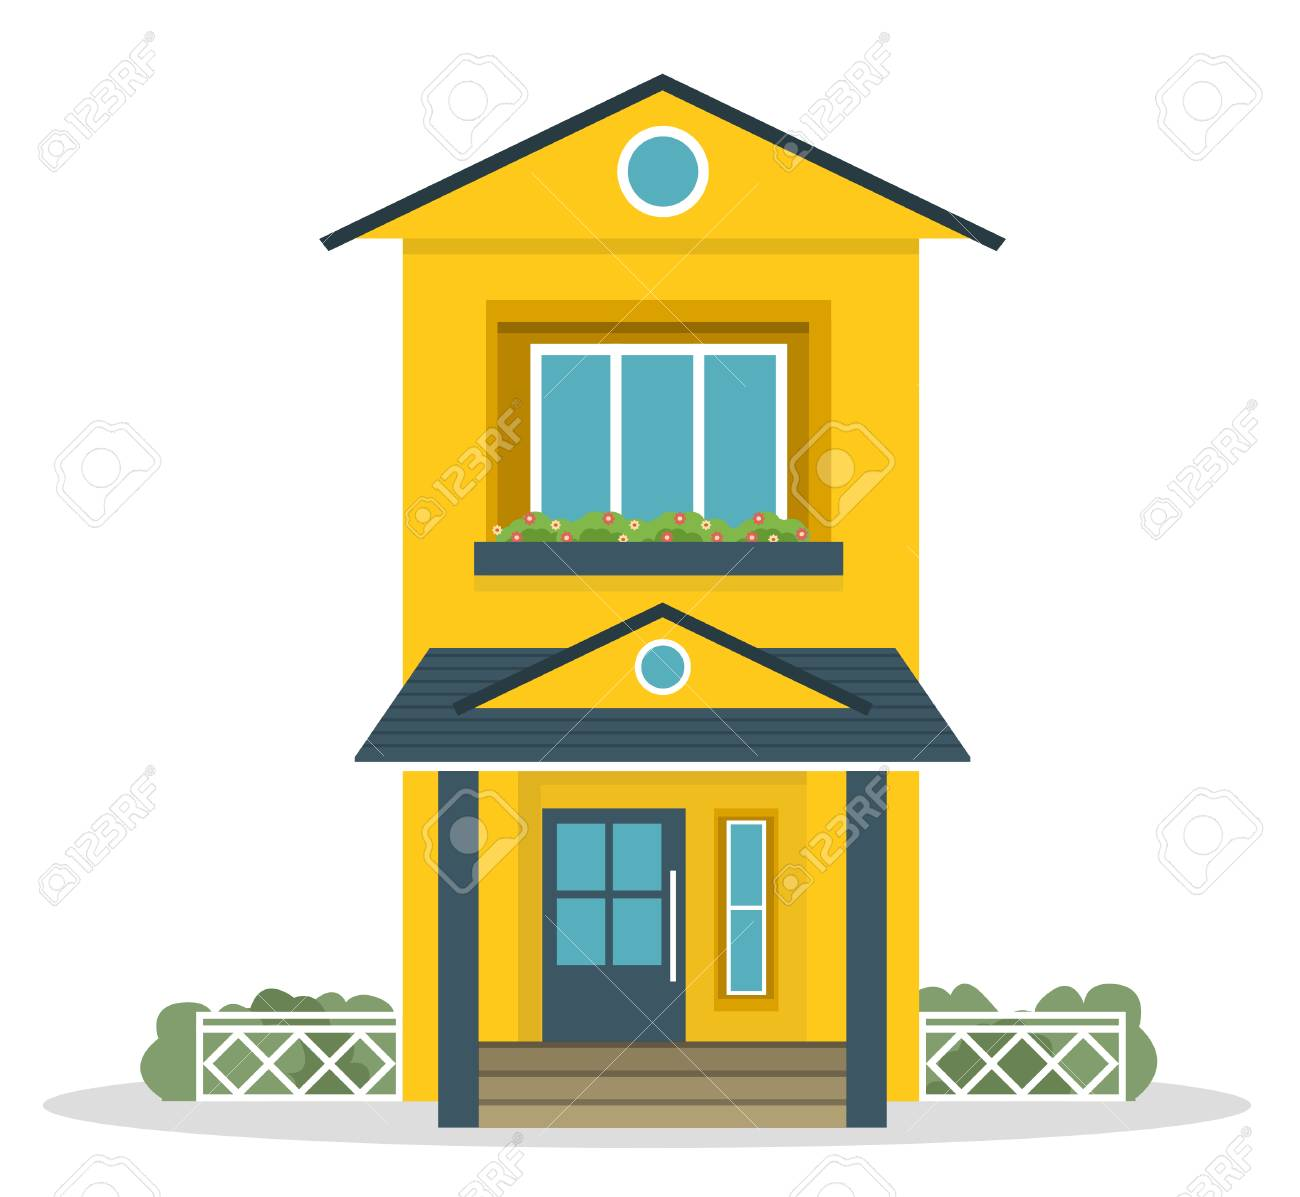 Vector - Flat style countryside family house with backyard lawn concept. Architecture design elements. Build your world collection. - 123546742